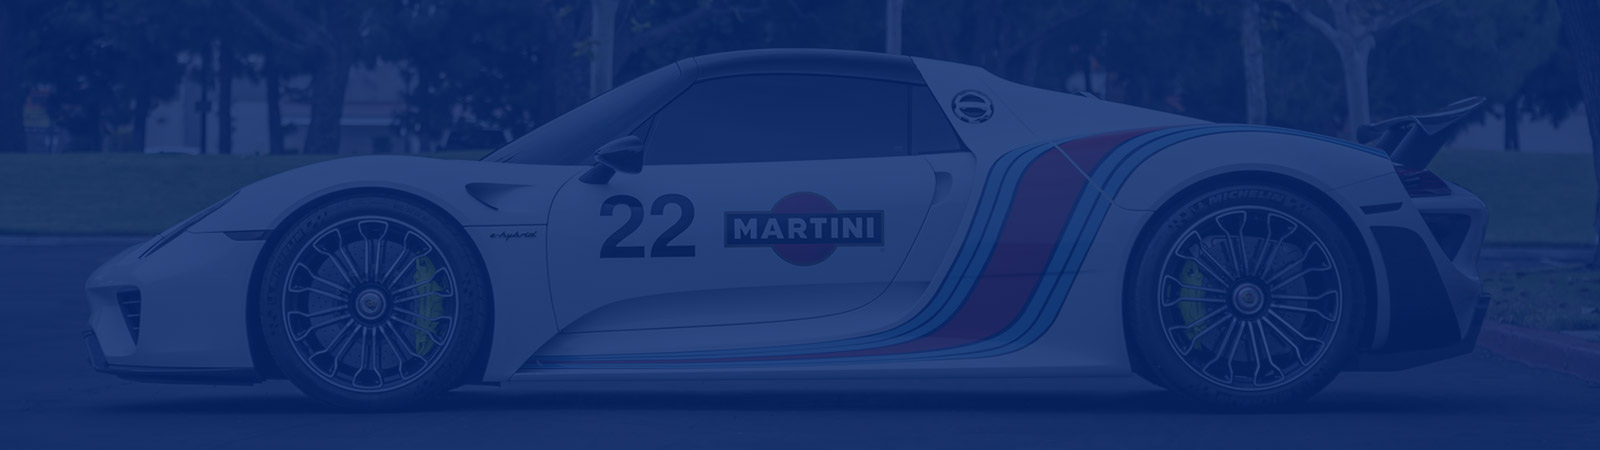 Porsche 918 Spyder Martini Livery – Protection and Graphics